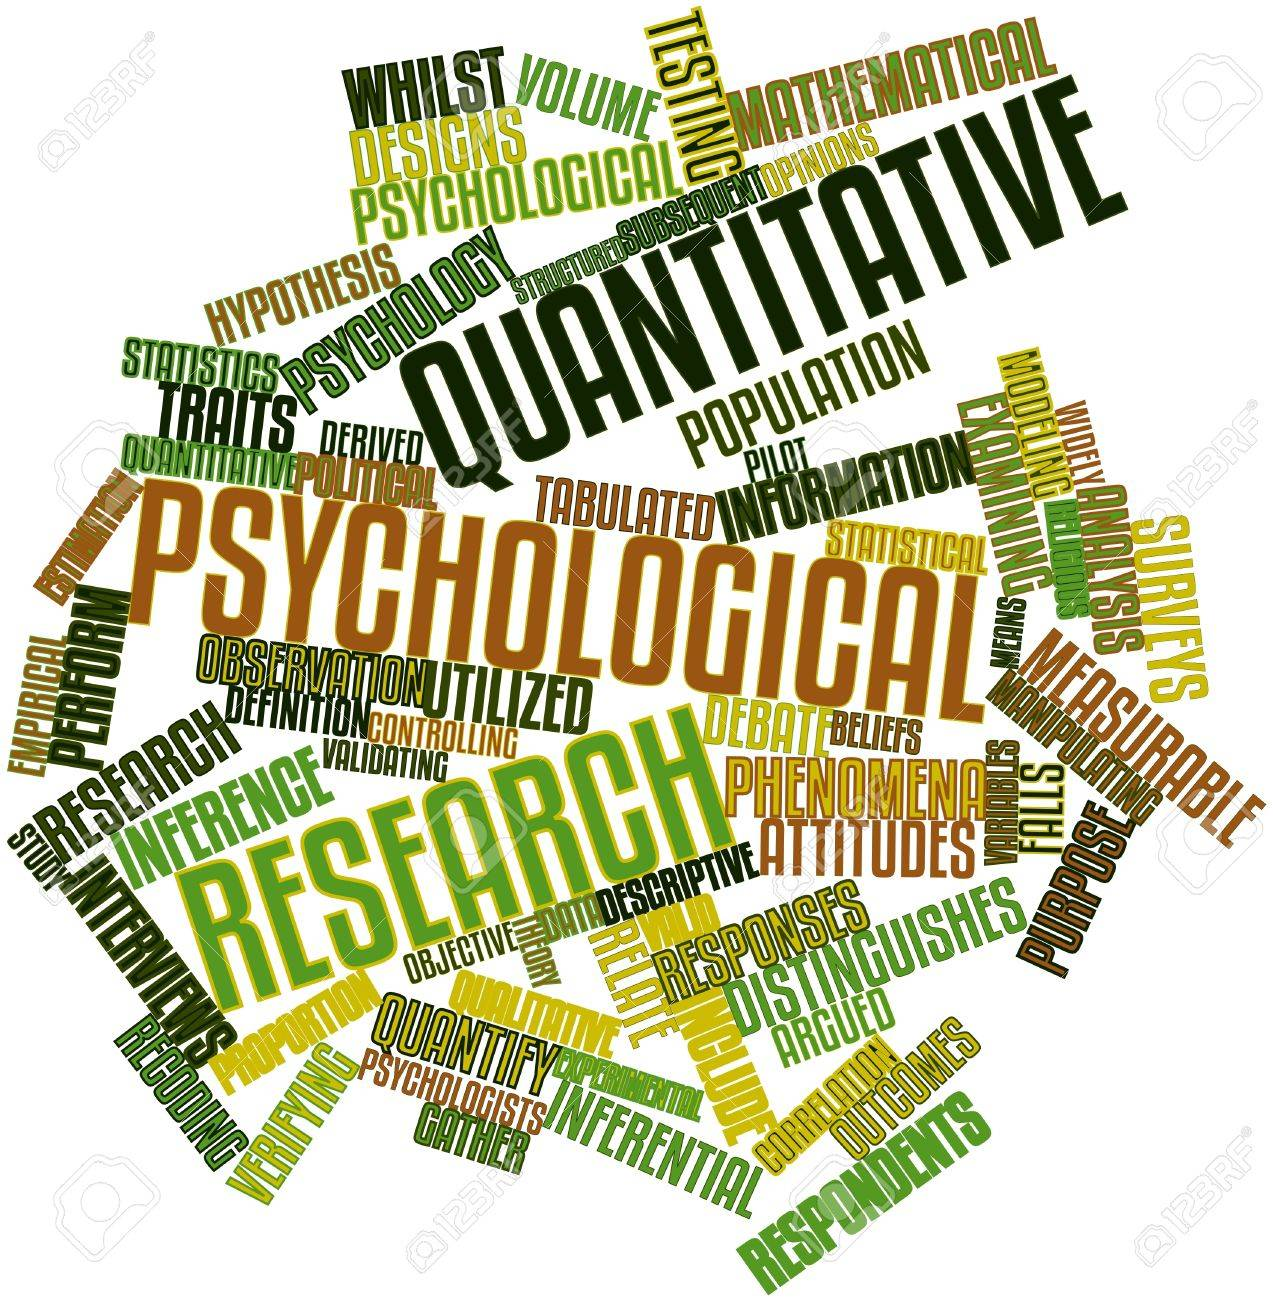 Psychology research abstract?